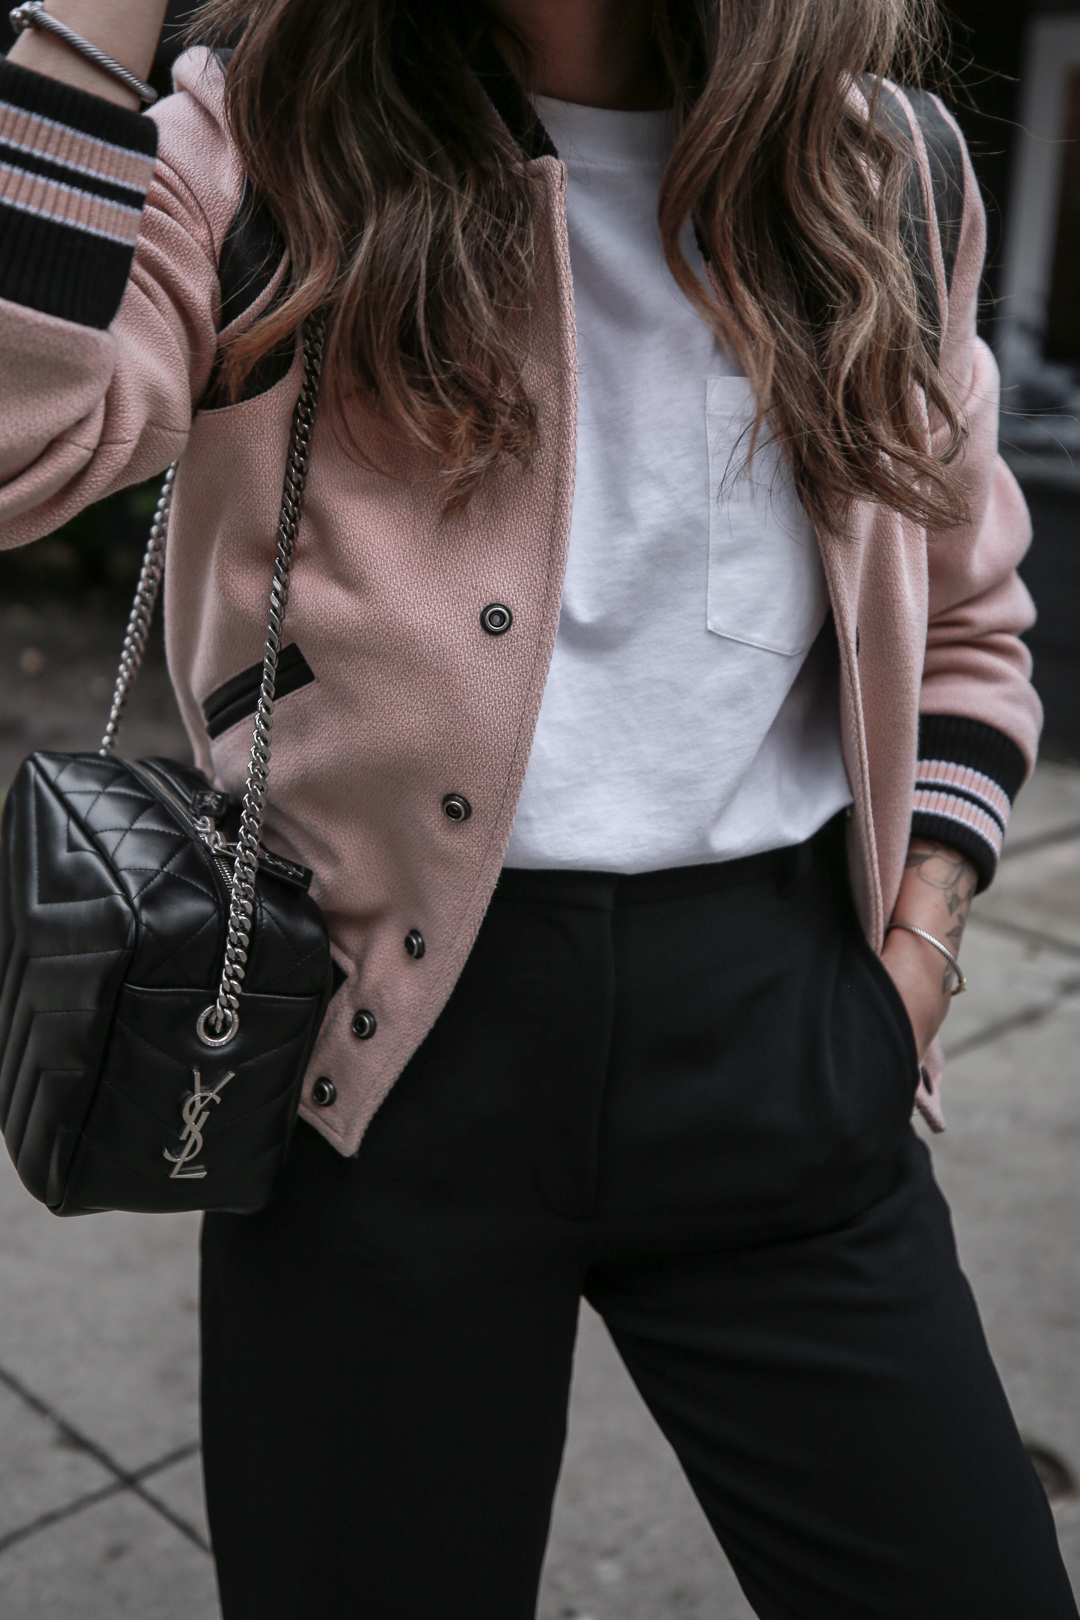 Nathalie Martin wearing Saint Laurent pink Teddy Jacket, YSL Lou Lou small bowling bag, white canvas sneakers, Aritzia Jallade Pant, street style, woahstyle.com_4008.jpg